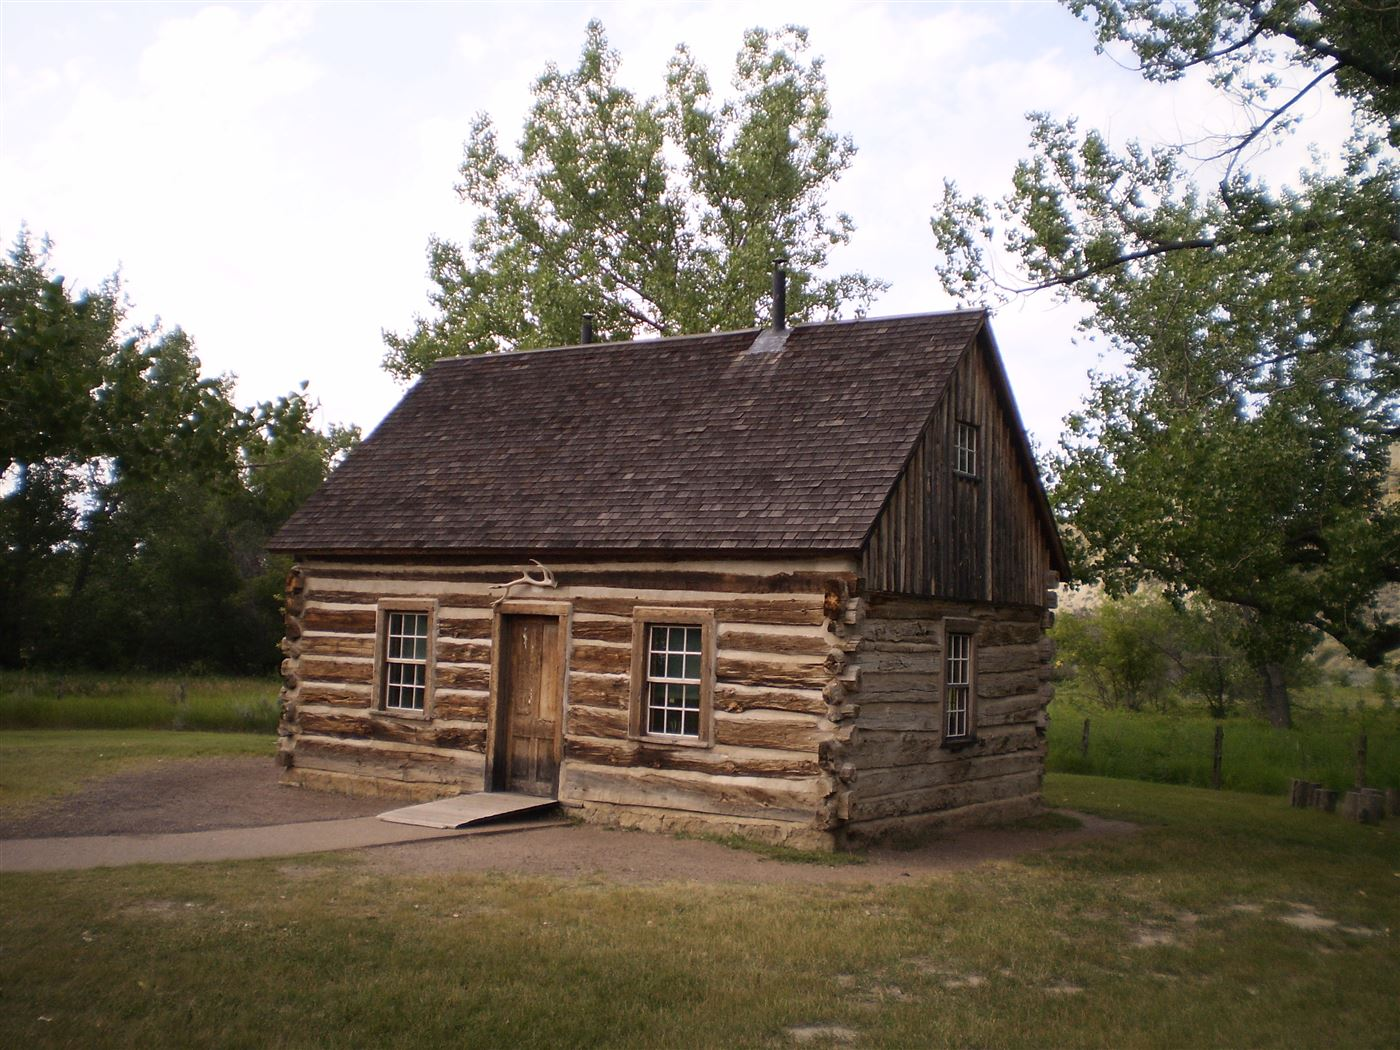 Roosevelt home, wood cabin